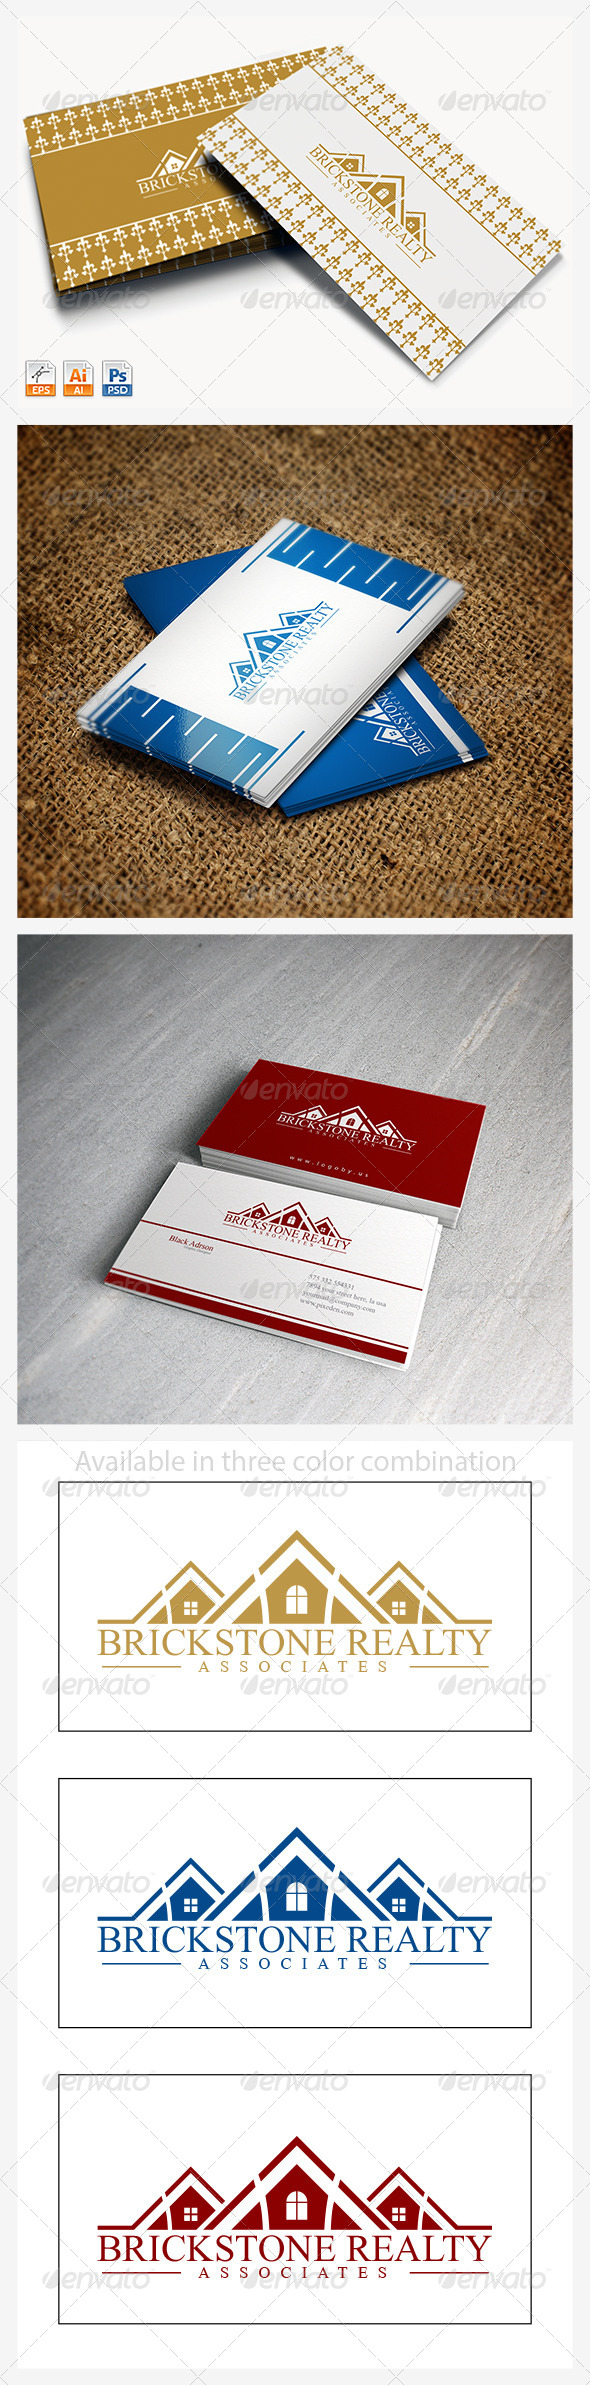 GraphicRiver Brick Stone Realty 3807201 Created: